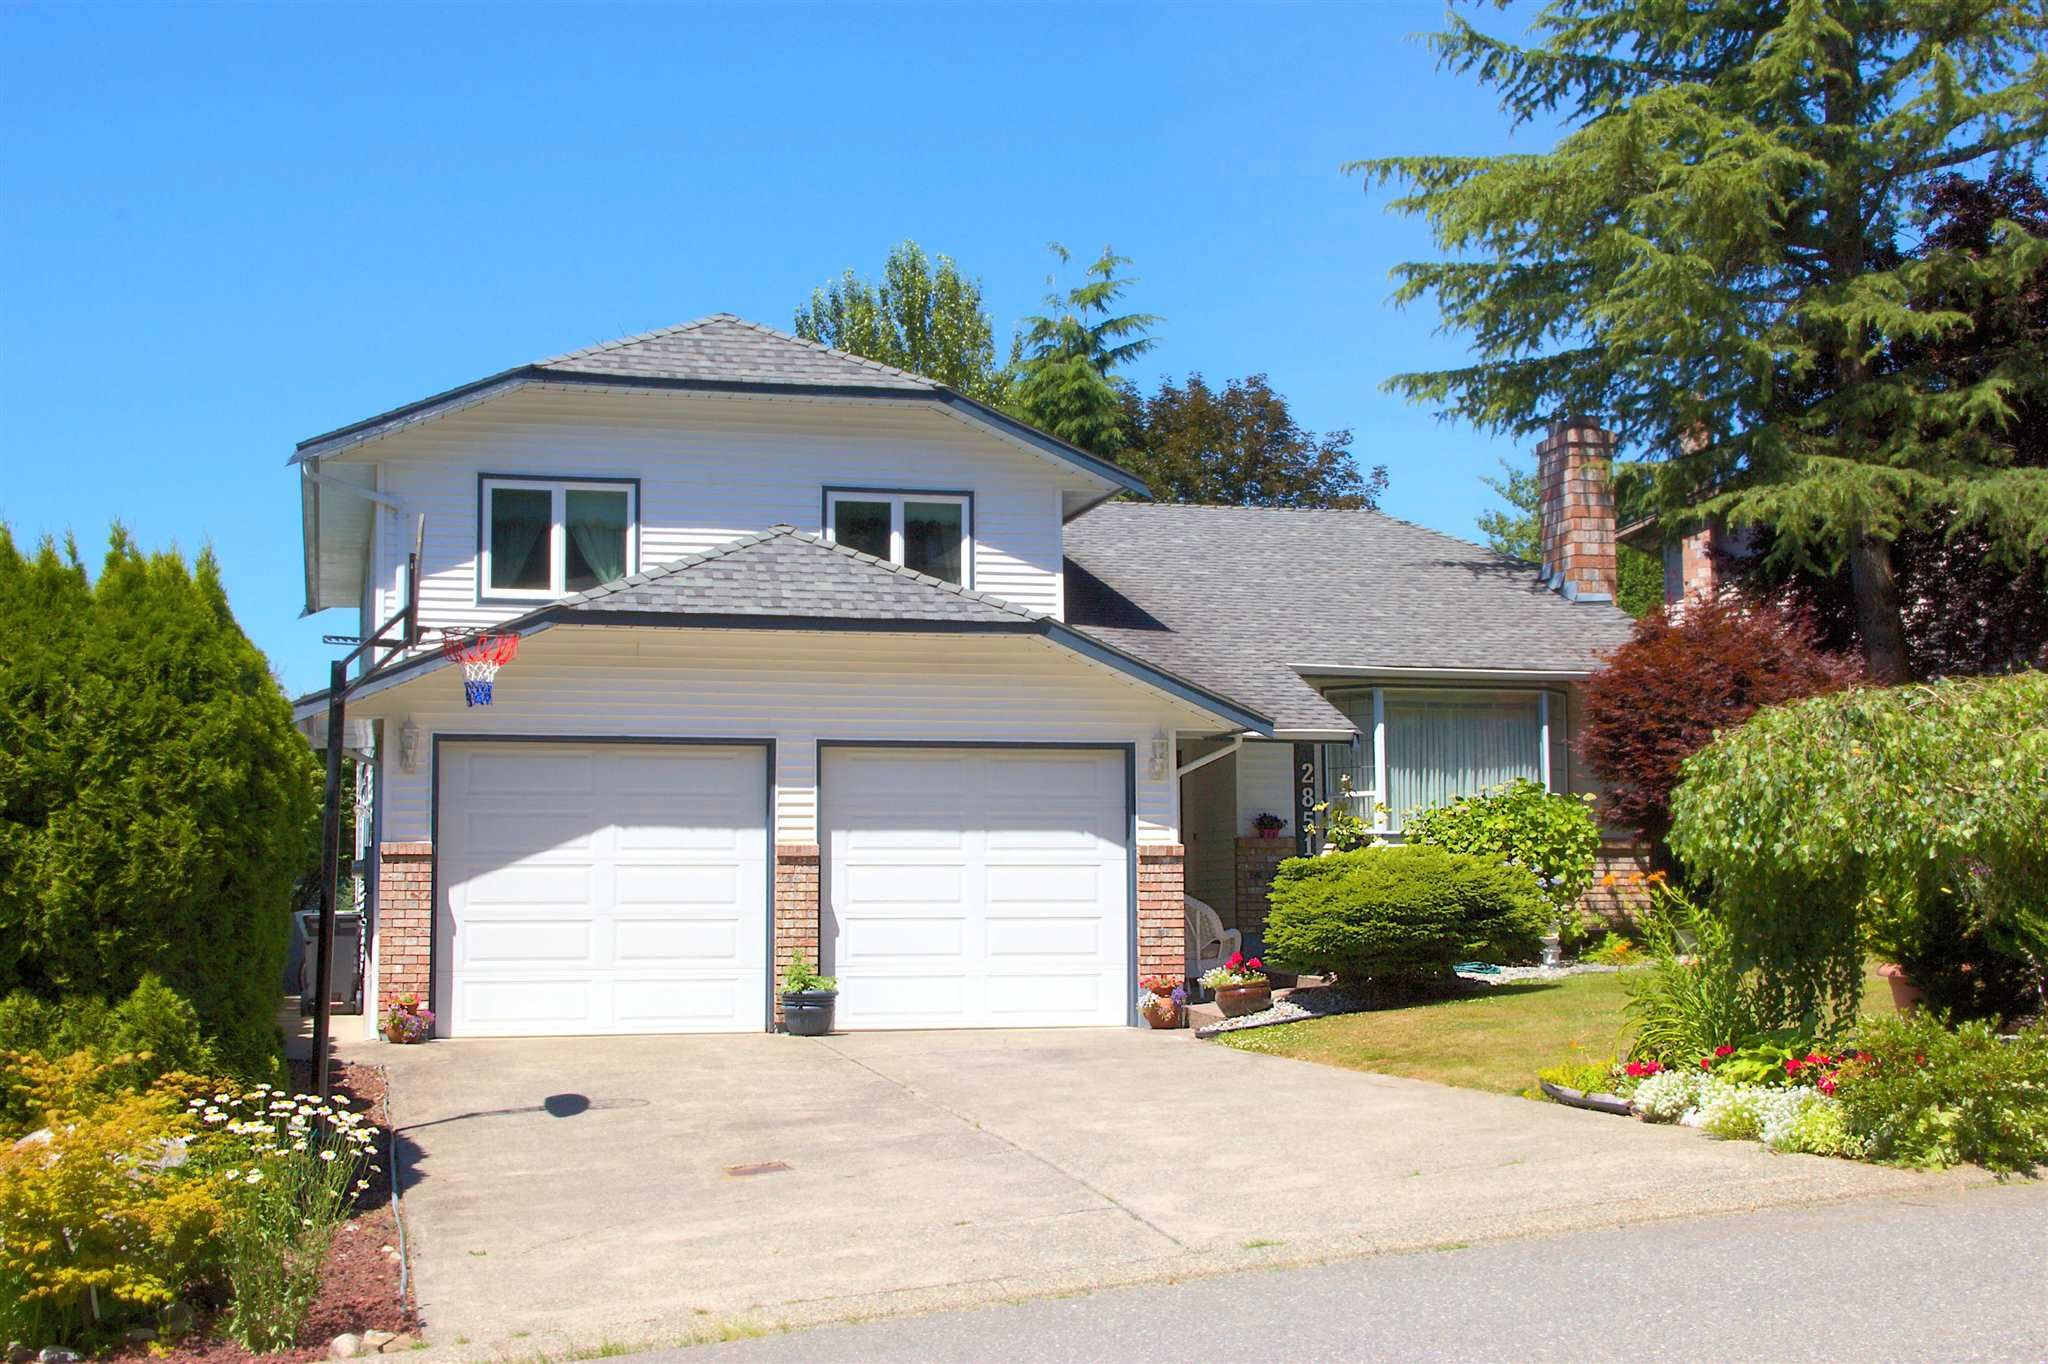 Main Photo: 2851 GLENSHIEL Drive in Abbotsford: Abbotsford East House for sale : MLS®# R2594690